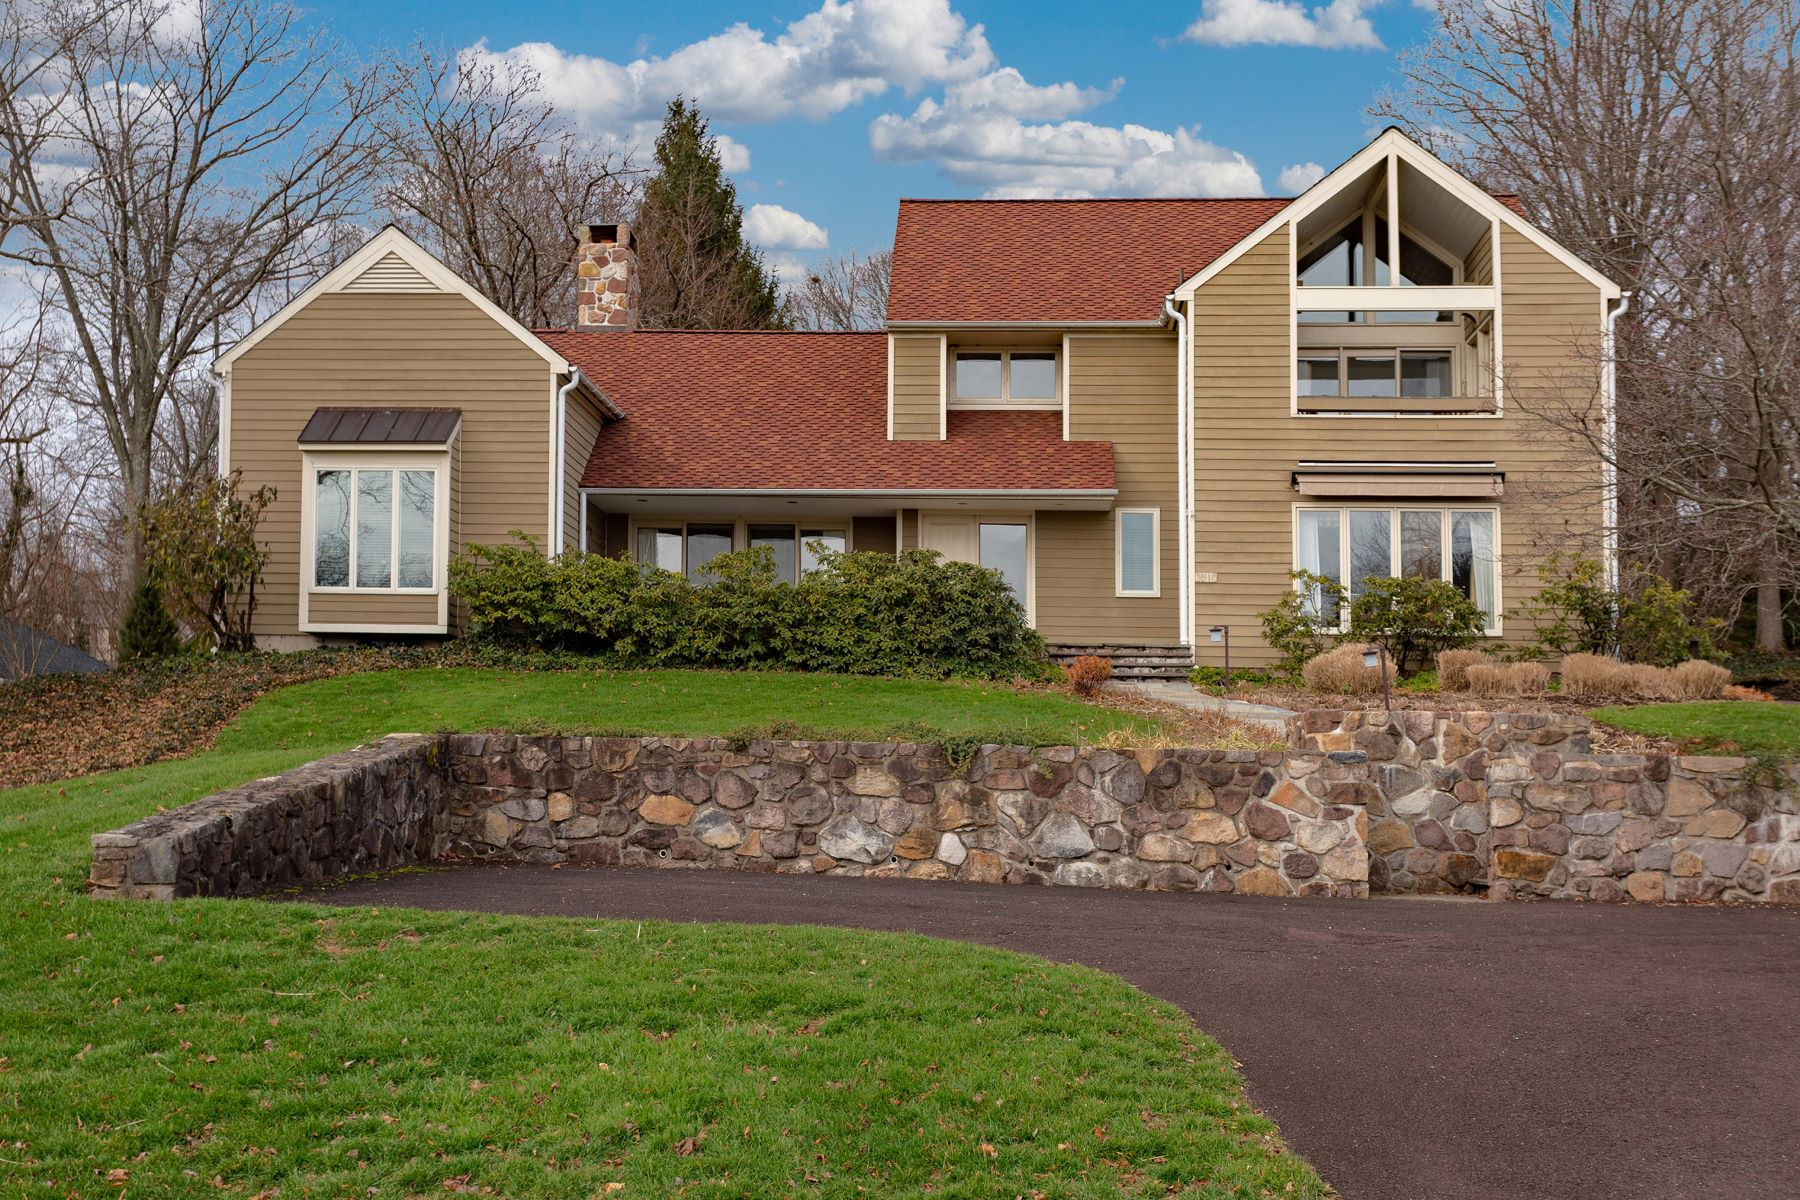 Single Family Home for Sale at 81 Golf View Rd Doylestown, Pennsylvania 18901 United States